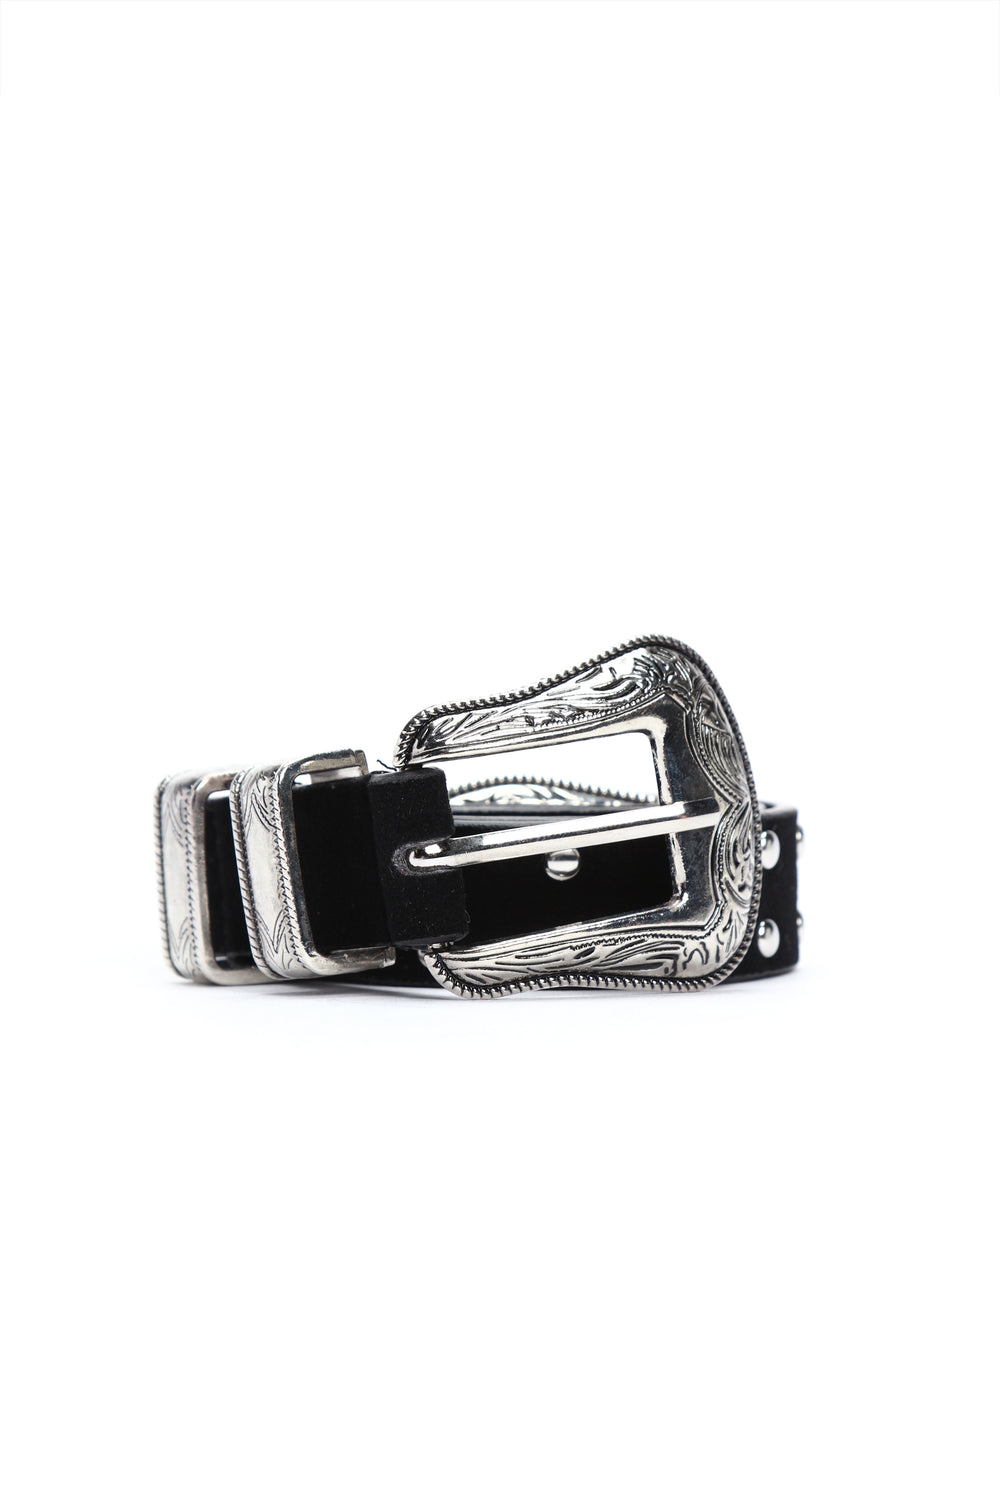 Dirty Dancing Belt - Silver/Black